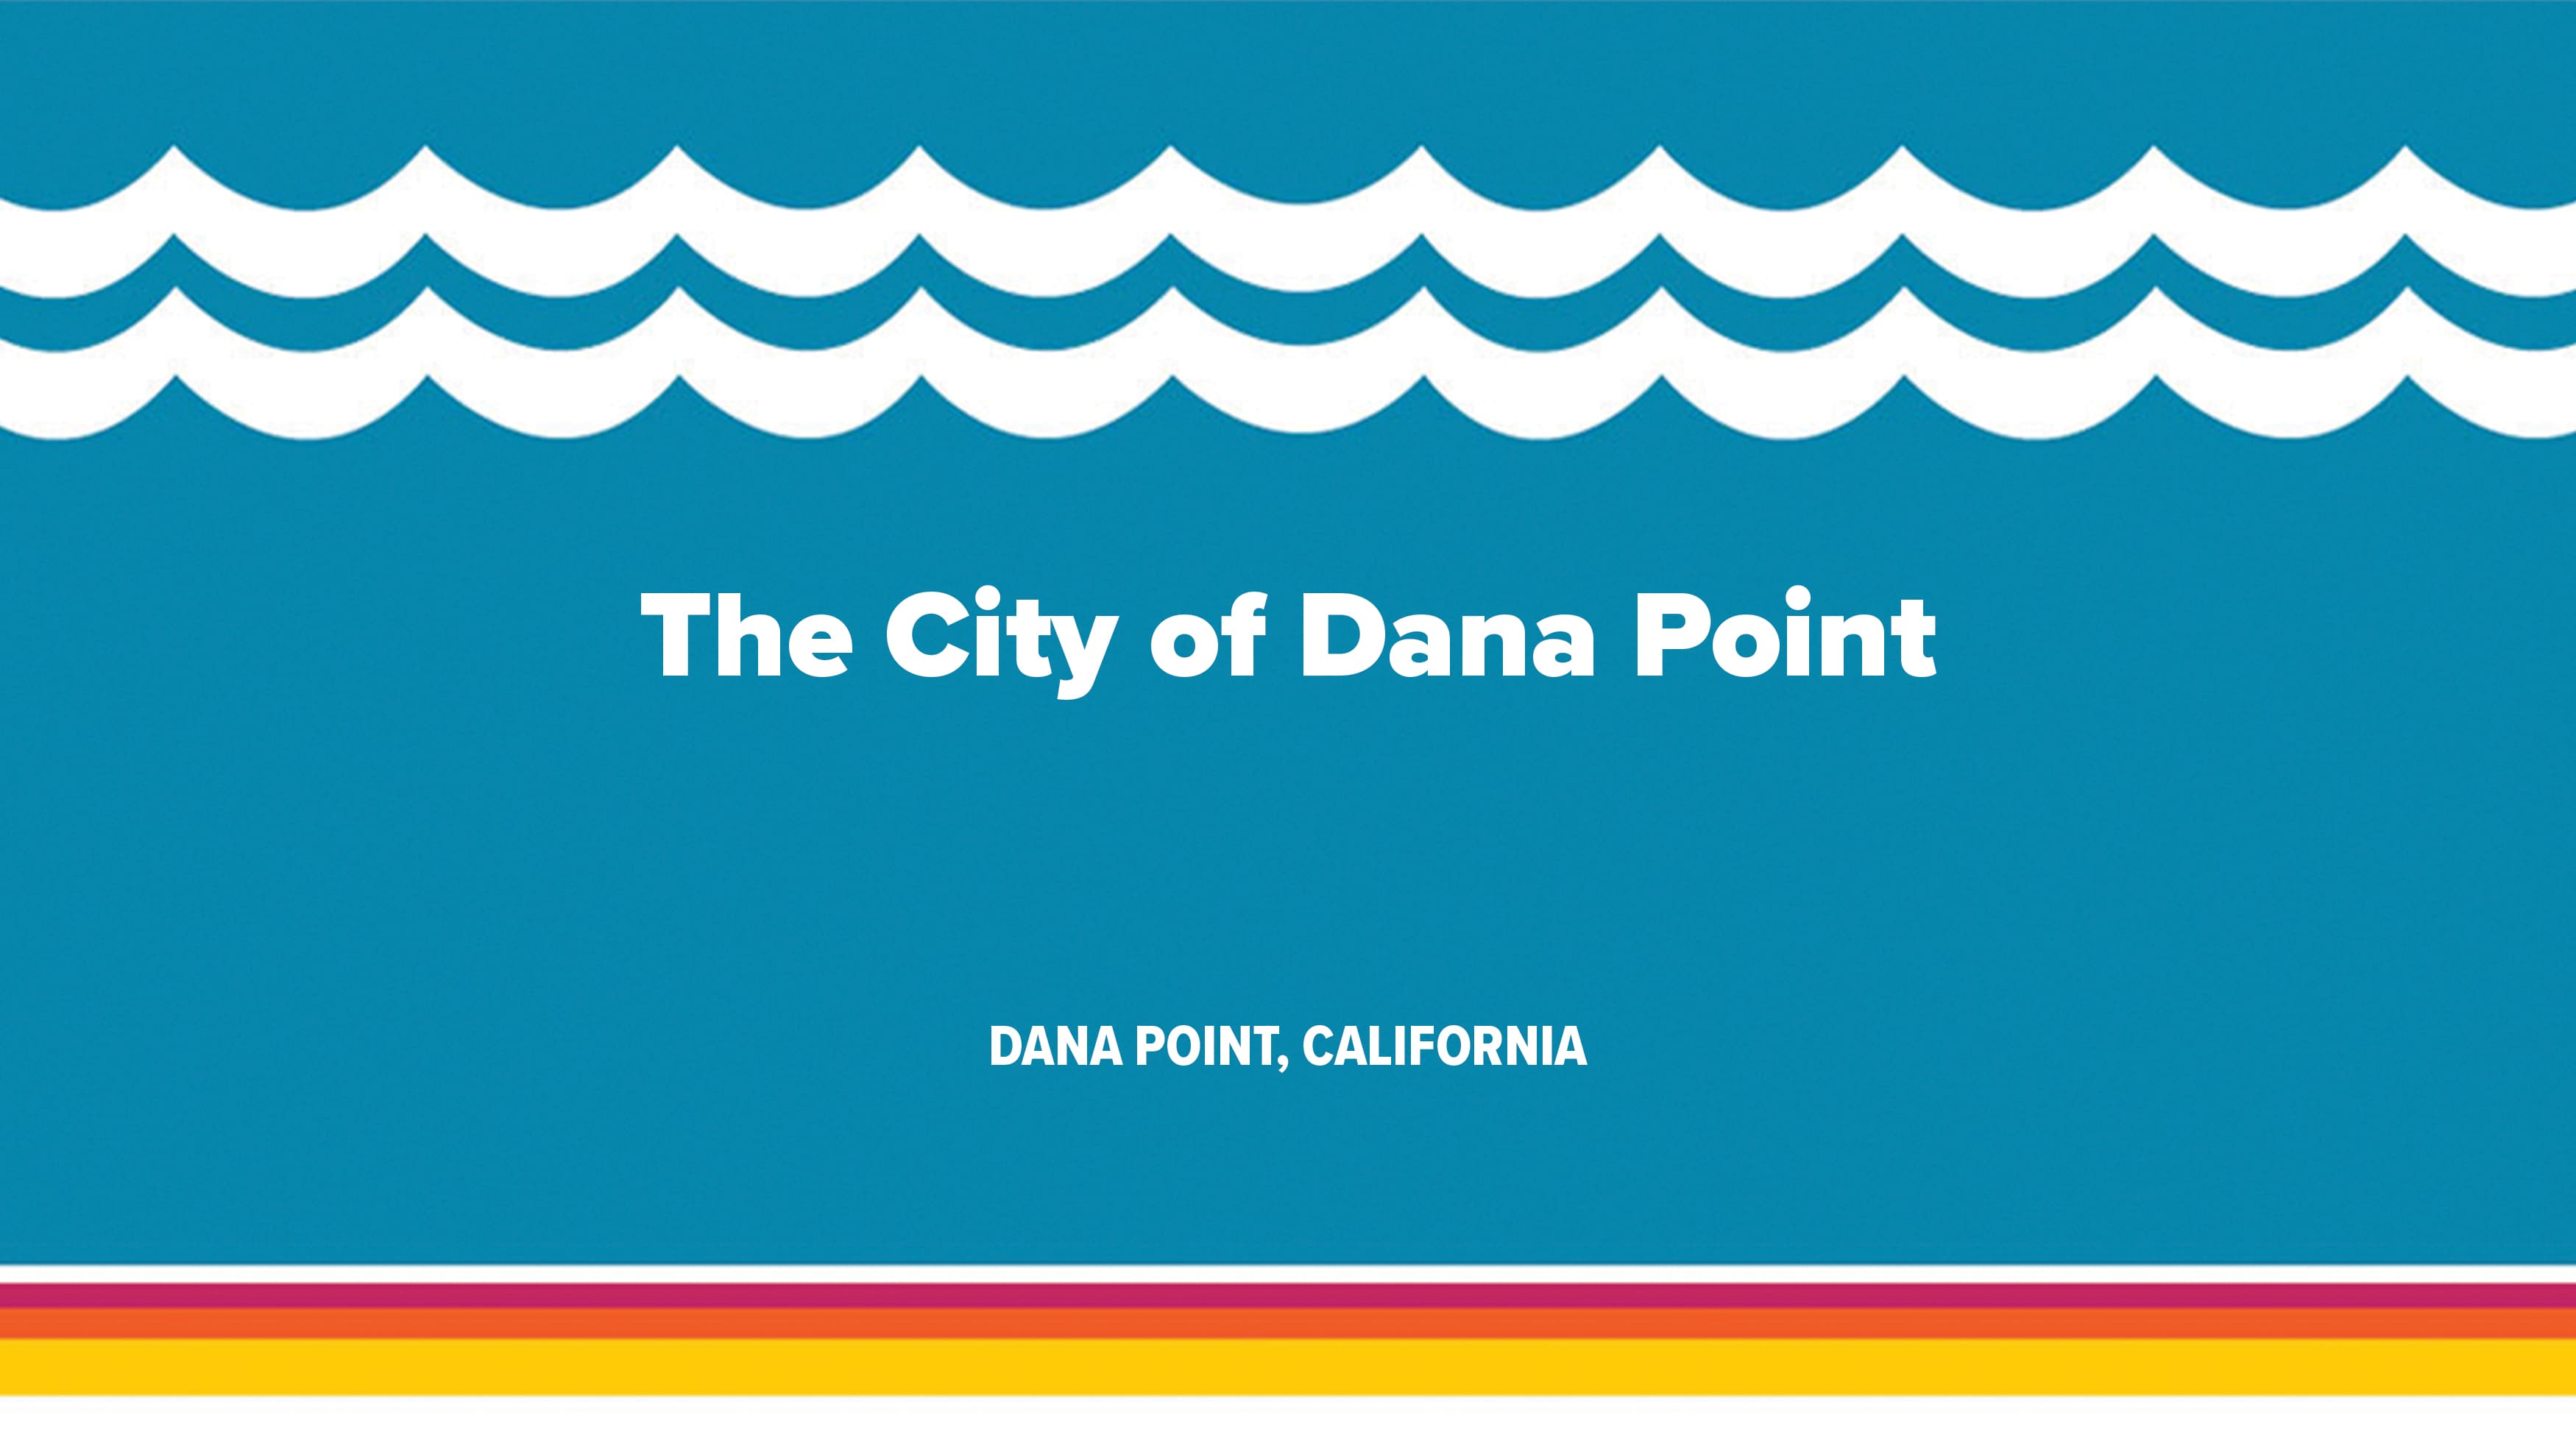 City of Dana Point cover image with retro-style 70s graphic.